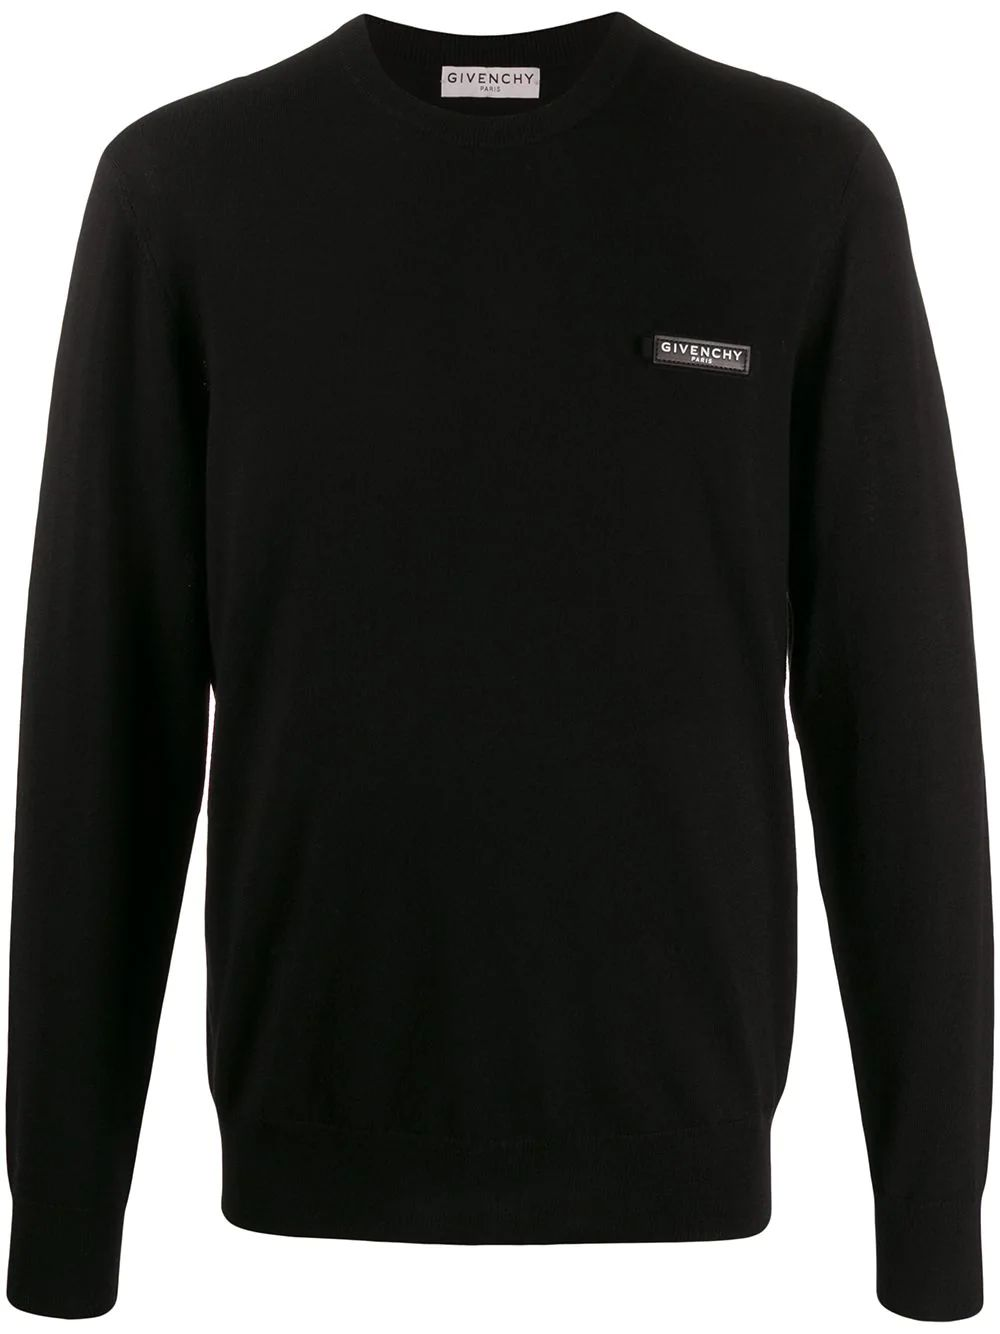 Givenchy  BLACK WOOL SWEATER